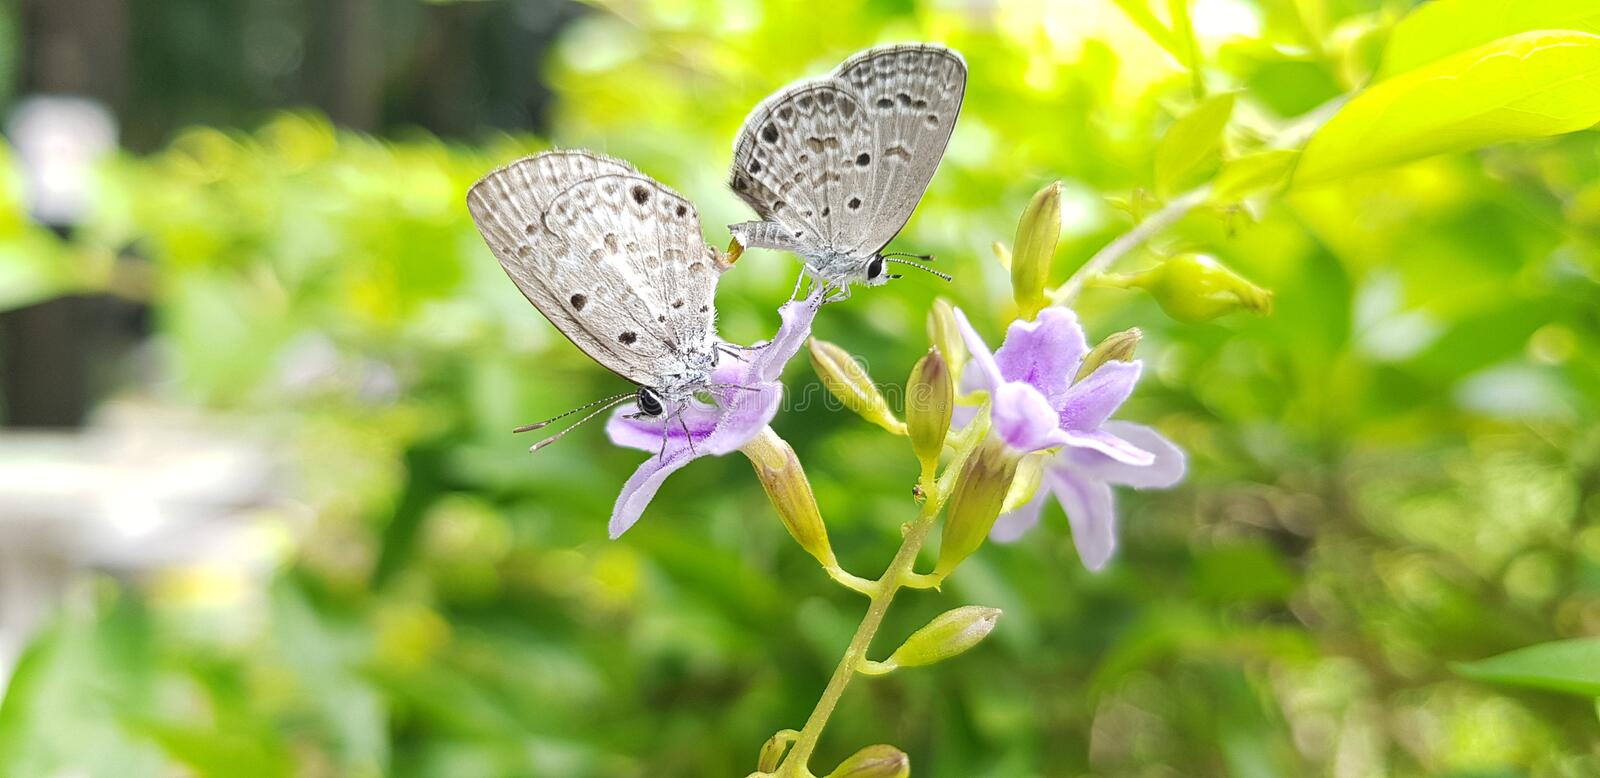 Two lesser grass blue on the leaf,The breeding of gray butterflies royalty free stock image